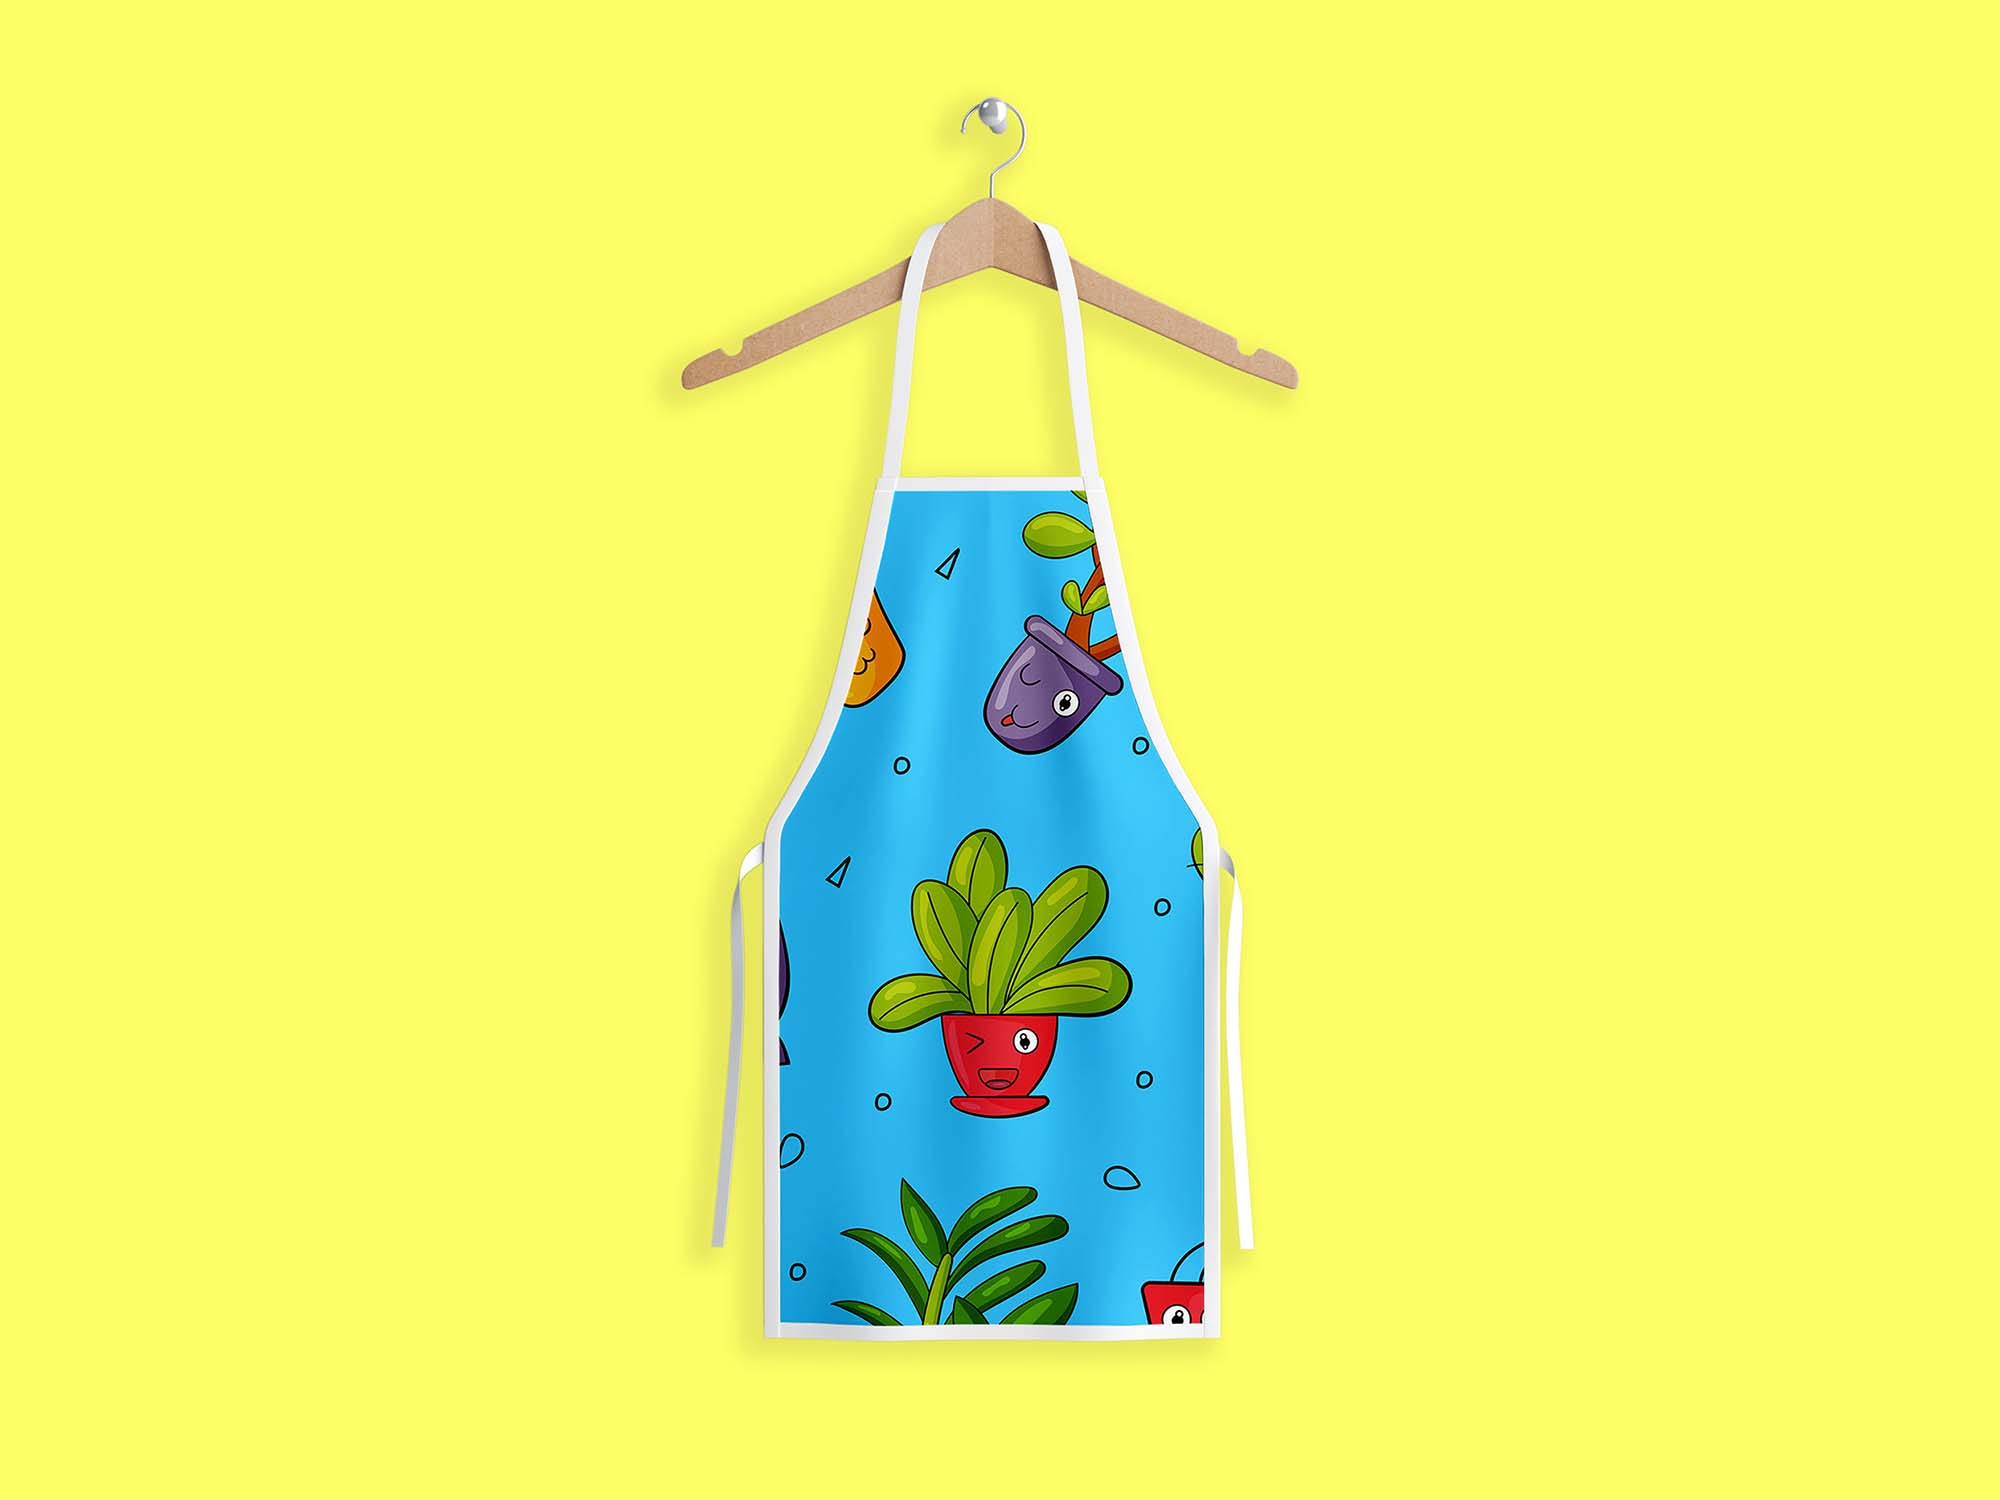 download free download apron psd mockup that will allow you to present a logo or typography in a natural way. Free Chef Apron Mockup Psd